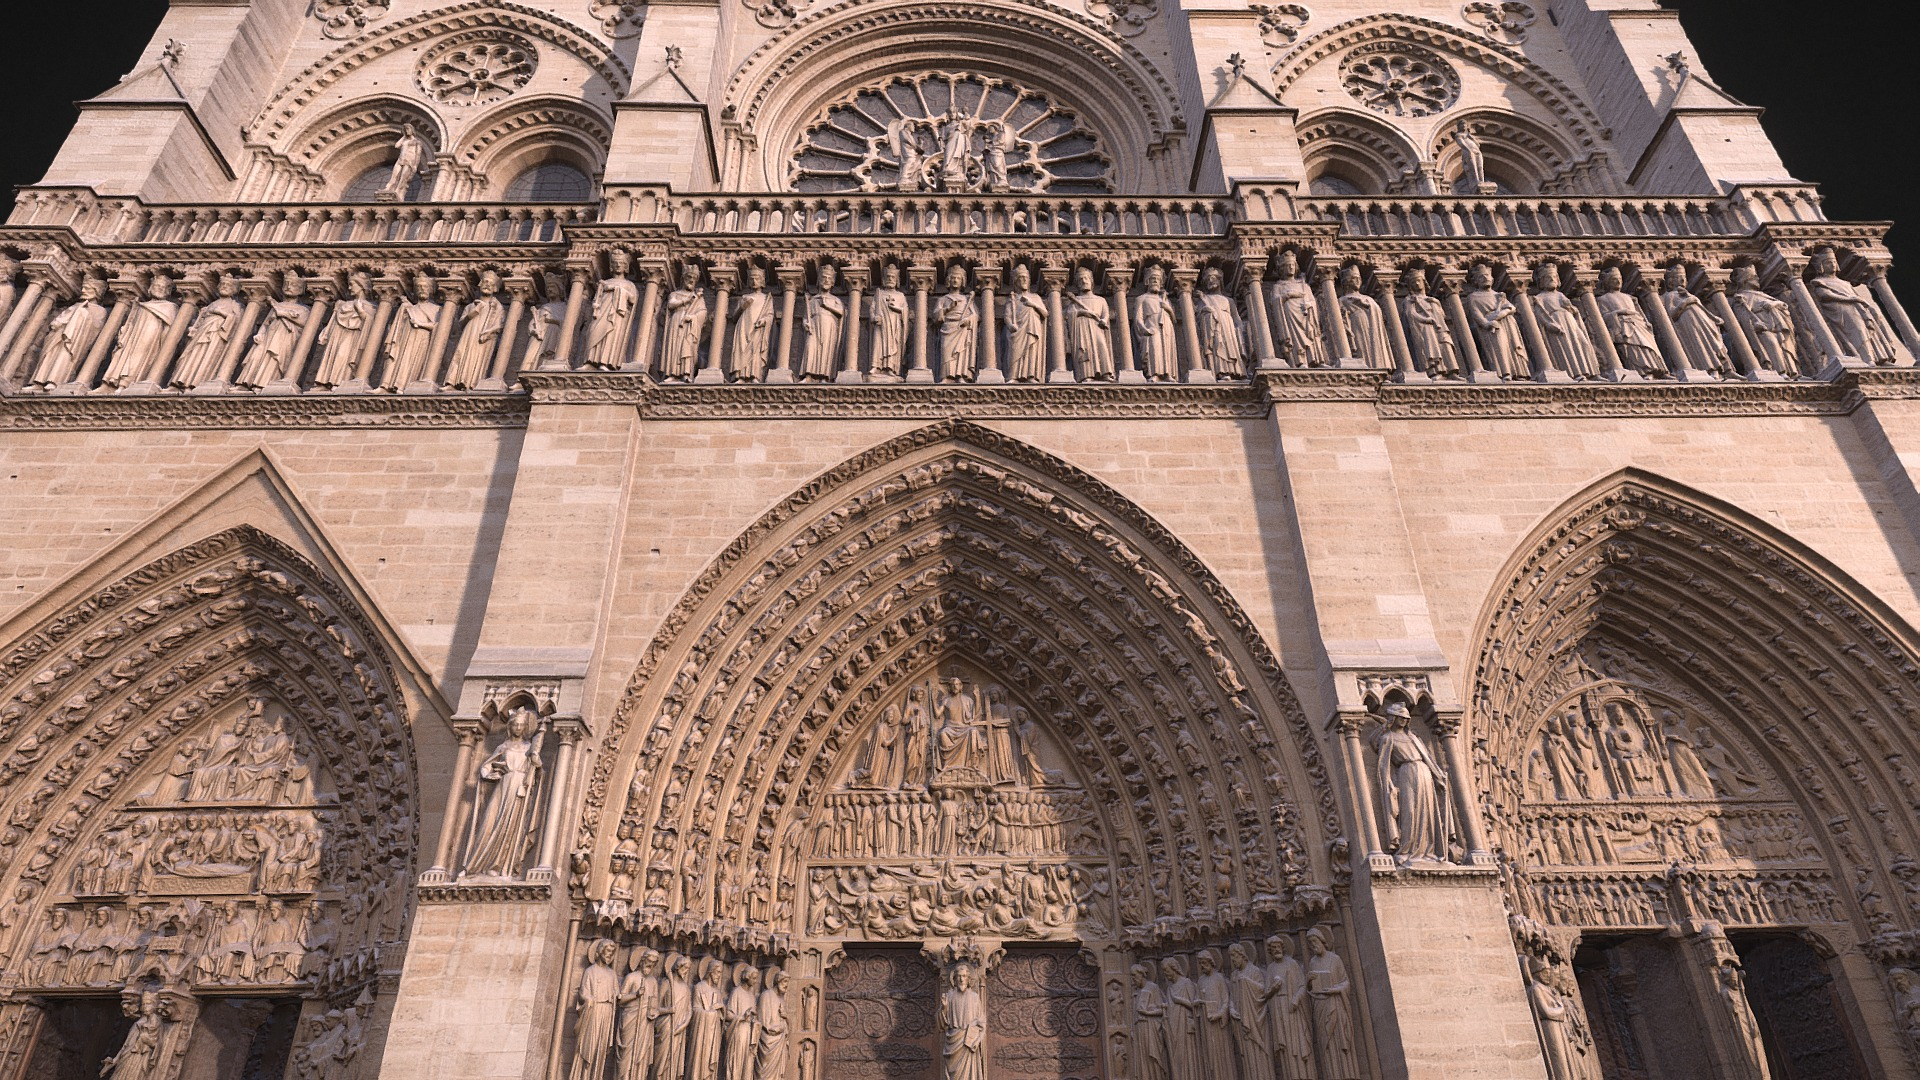 Notre Dame De Paris Facade 3dscan 3d Model By Scanboxyz